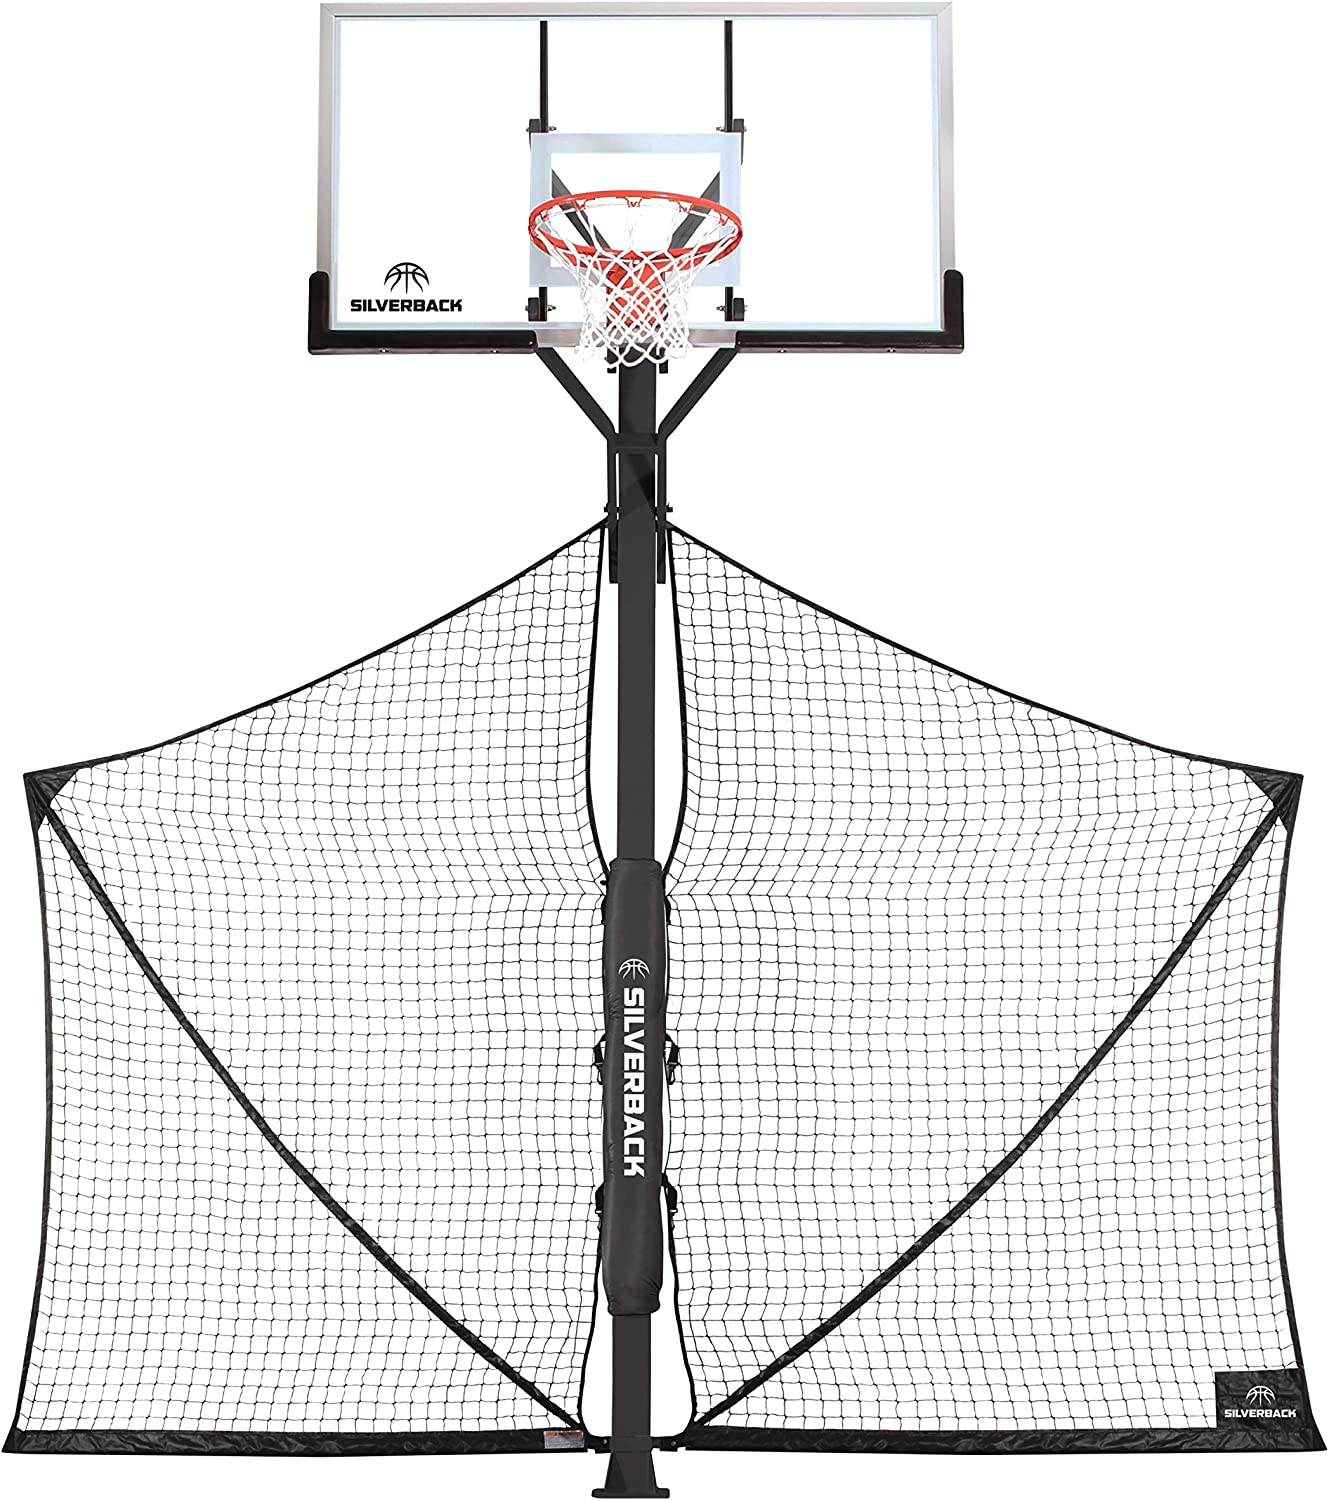 Silverback Basketball Yard Guard Defensive Net System Rebounder with Foldable Net and Arms into Pole